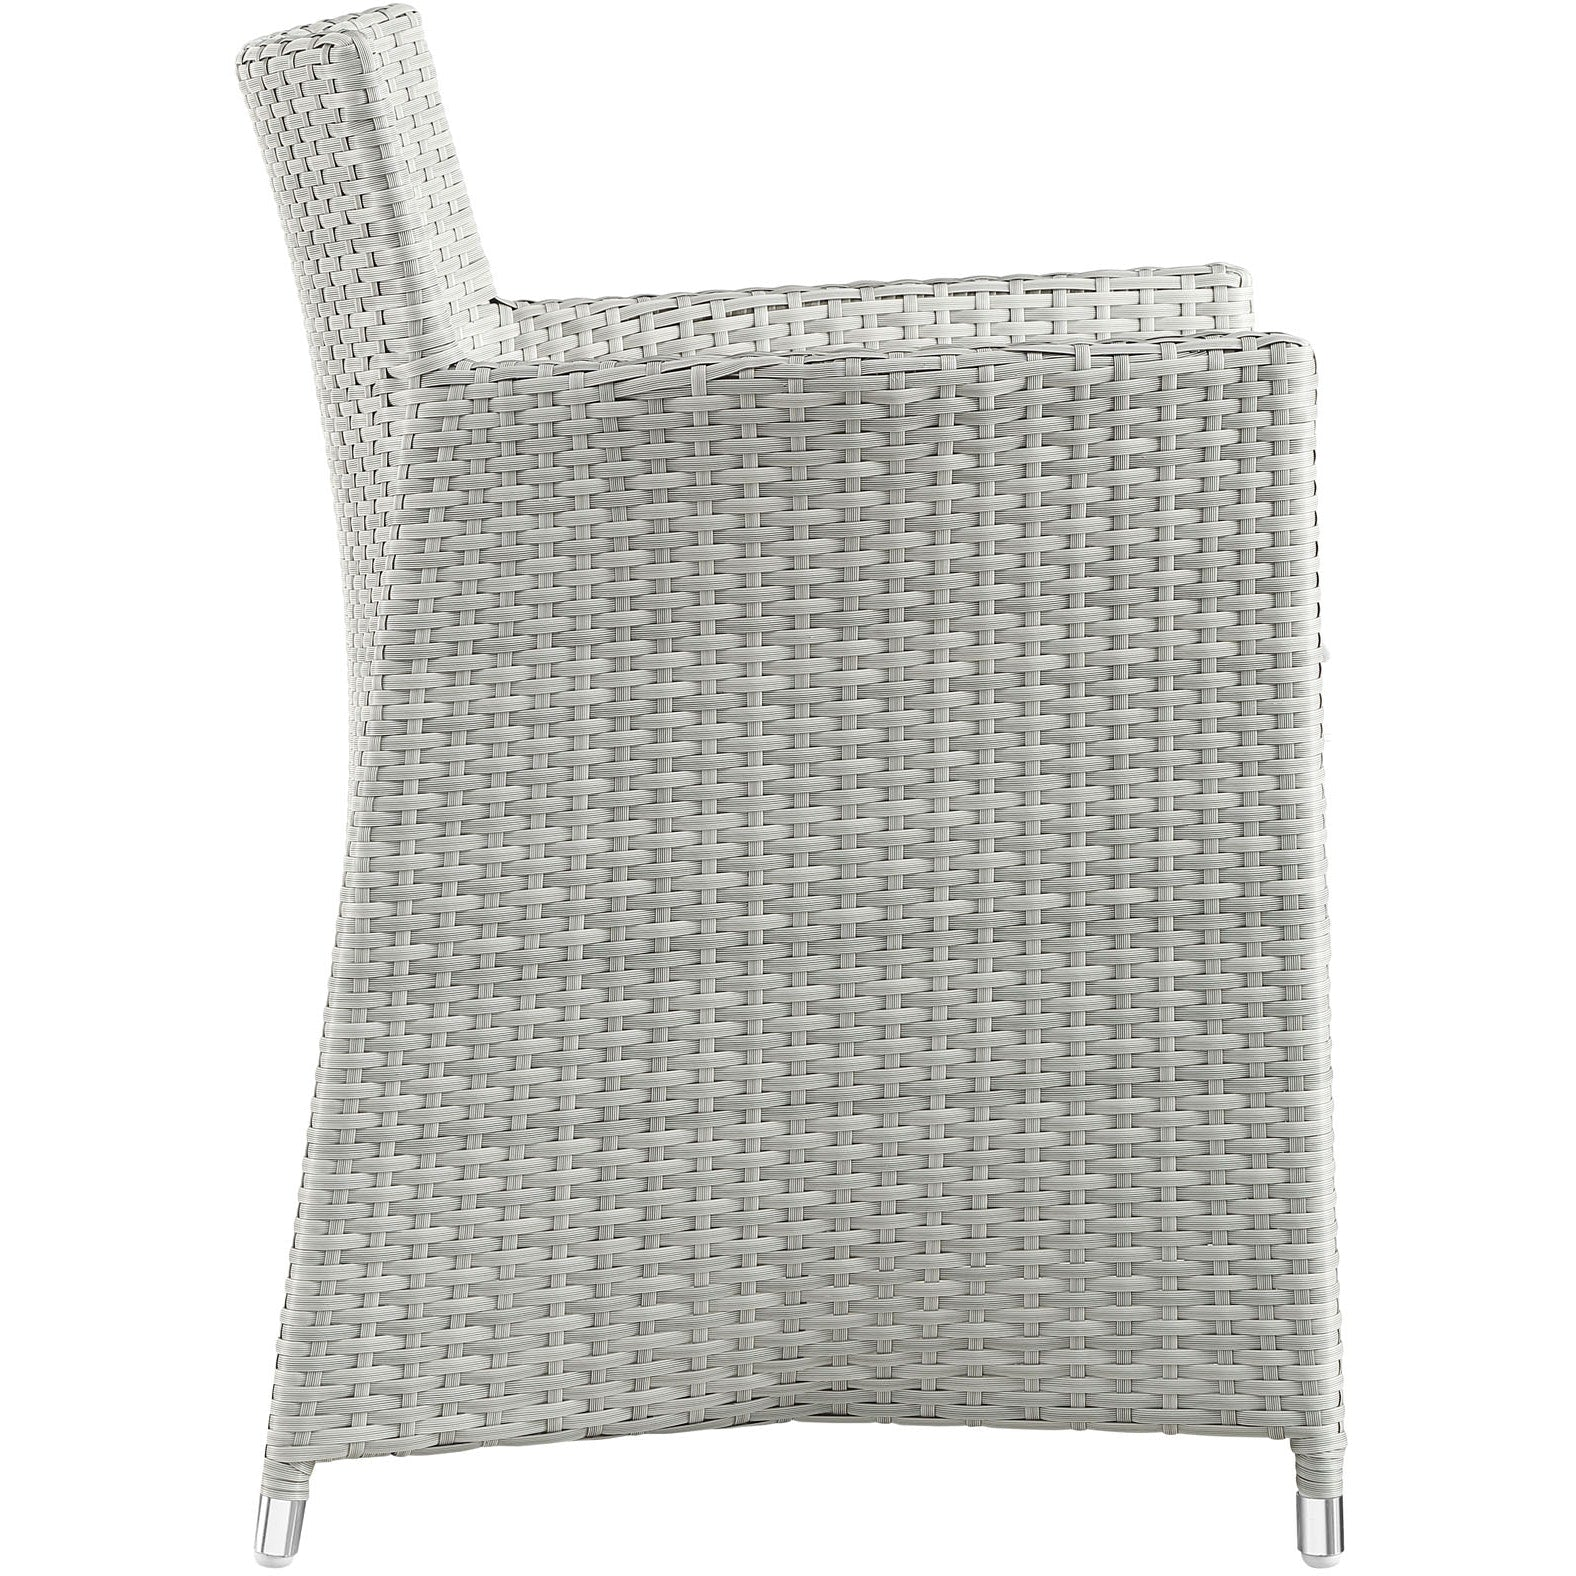 Junction Armchair Outdoor Patio Wicker Set of 2 - Gray White